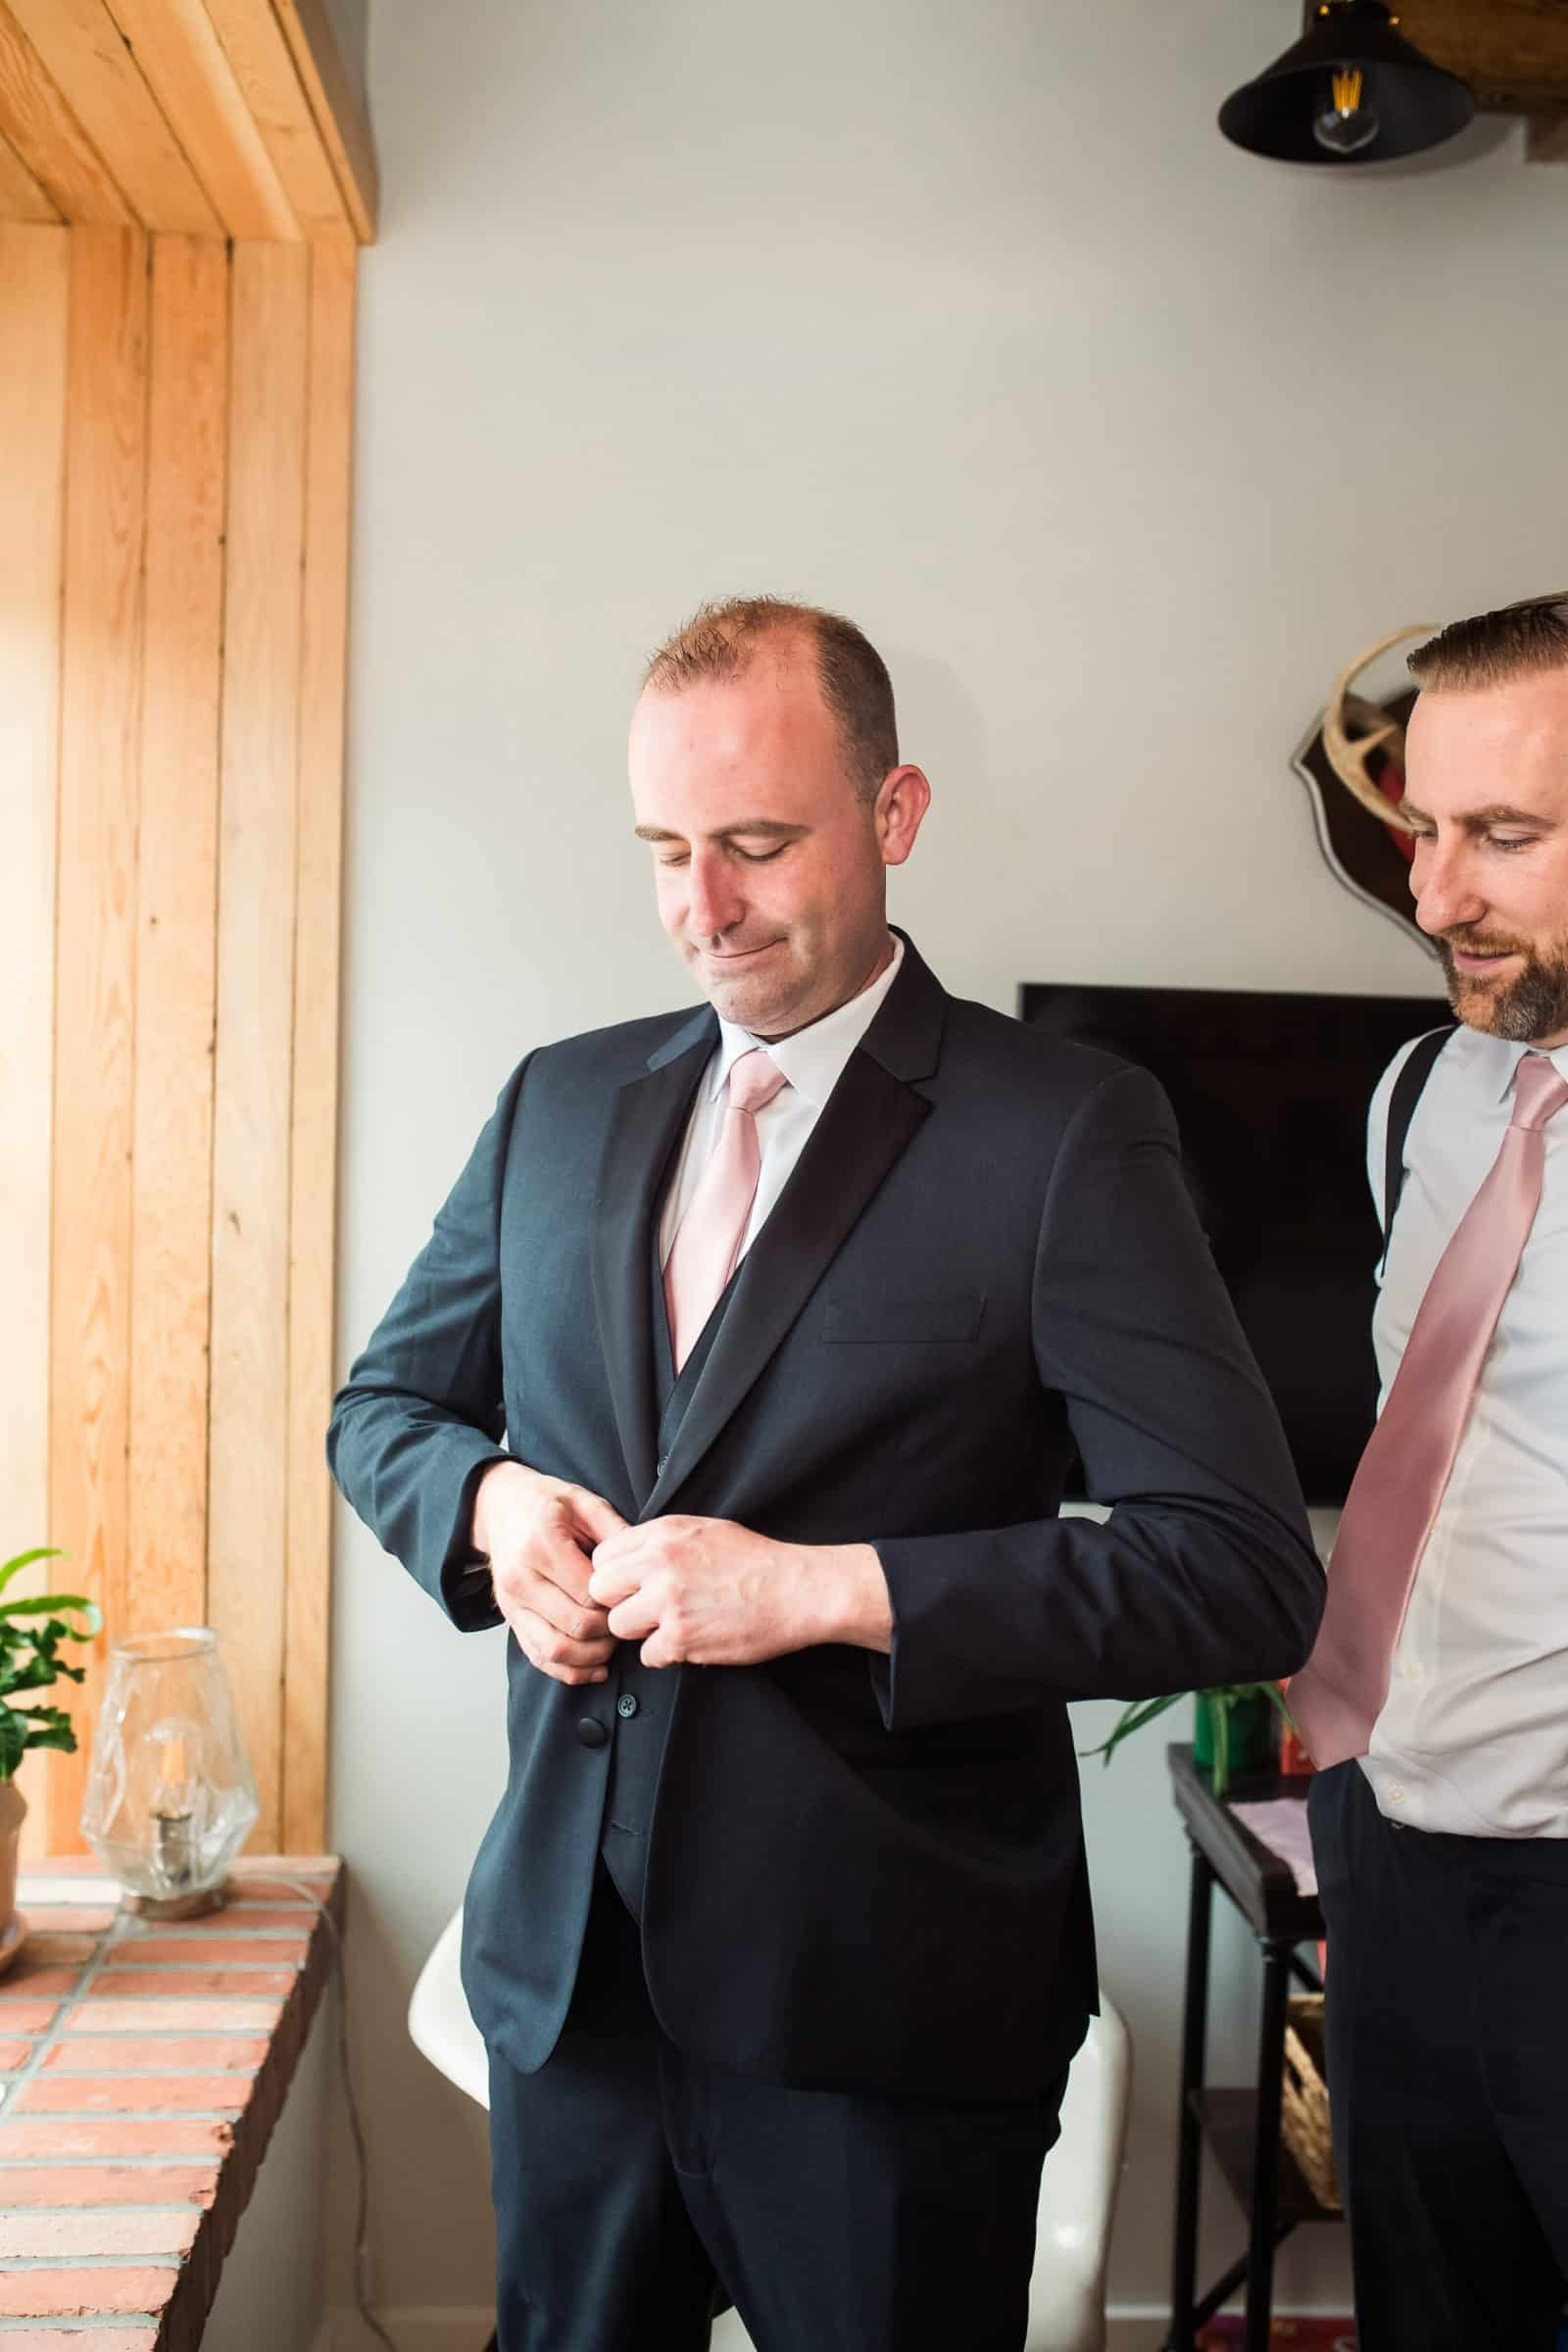 groom buttoning shirt with groomsman beside him